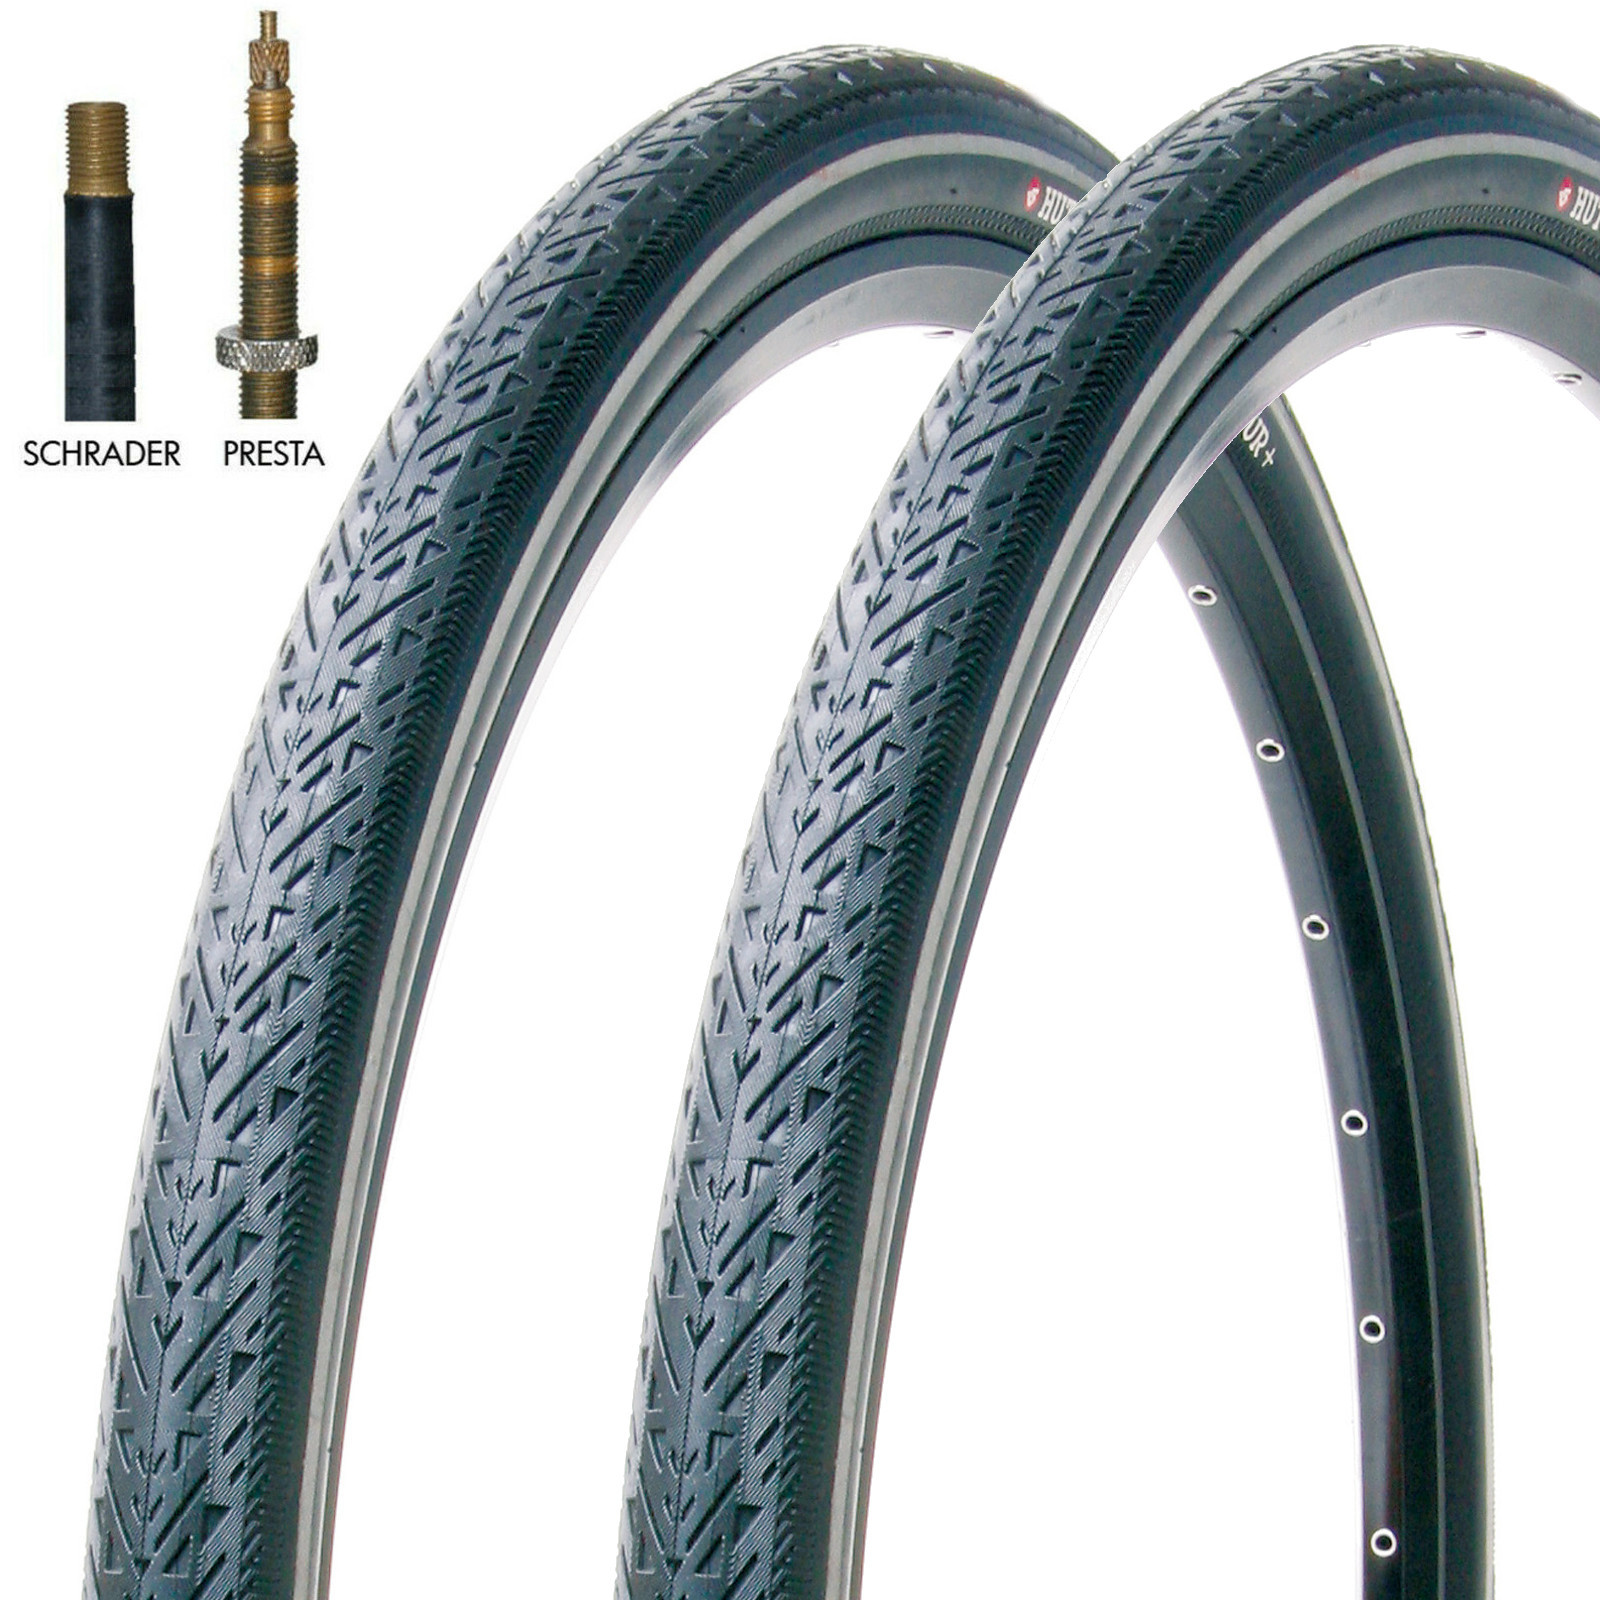 700C-City-Bike-Tyres-amp-Schrader-Tubes-Hutchinson-Urban-Tour-700-X-35C-Pair